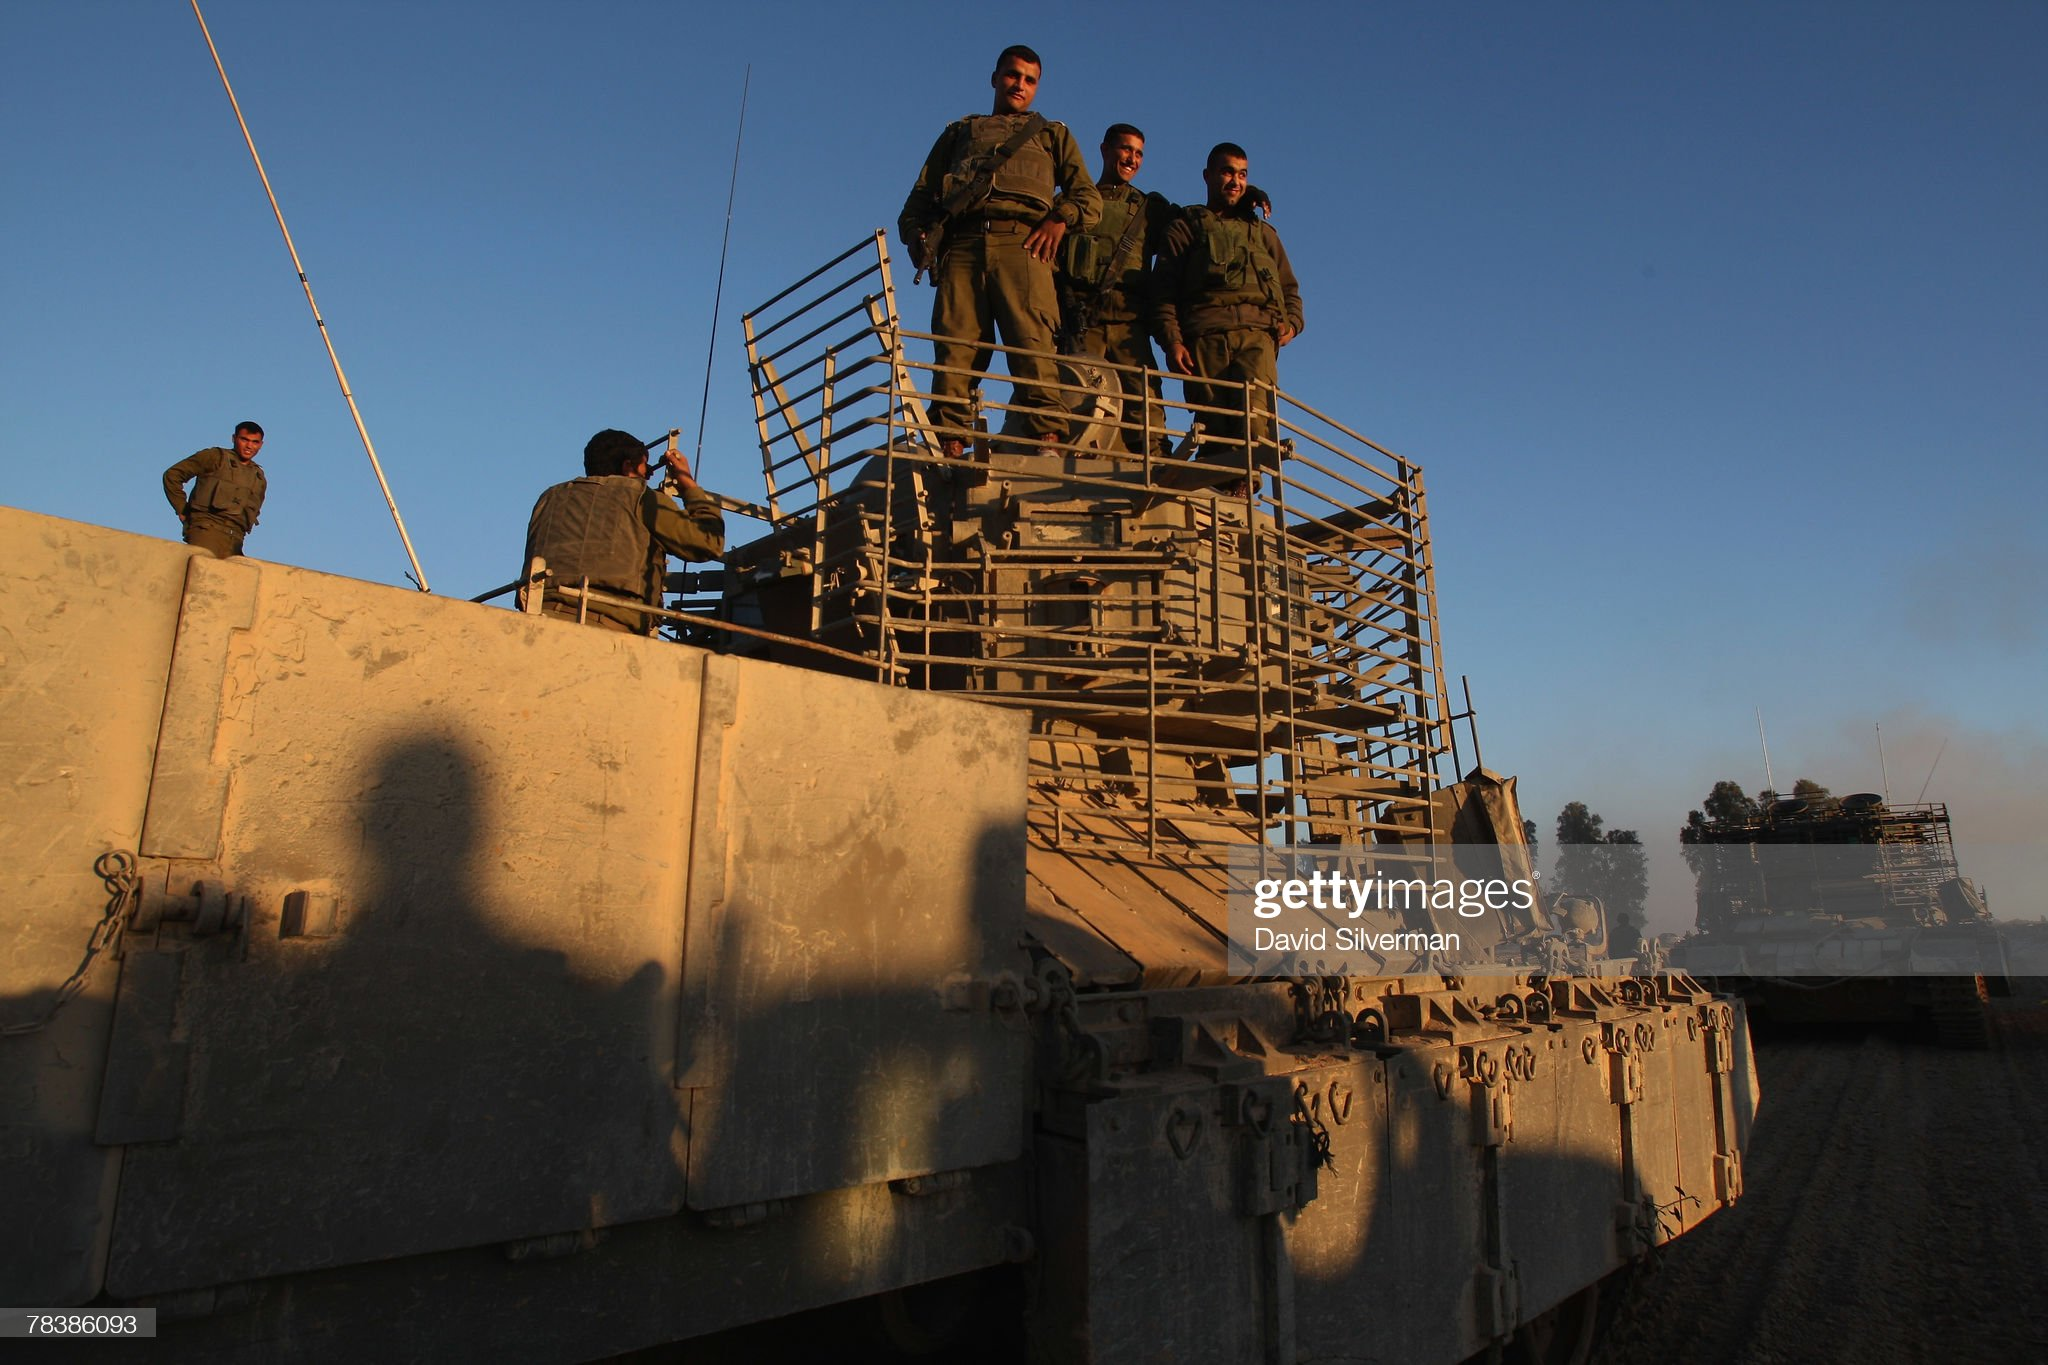 https://media.gettyimages.com/photos/israeli-troops-dismount-their-armoured-fighting-vehicles-on-returning-picture-id78386093?s=2048x2048